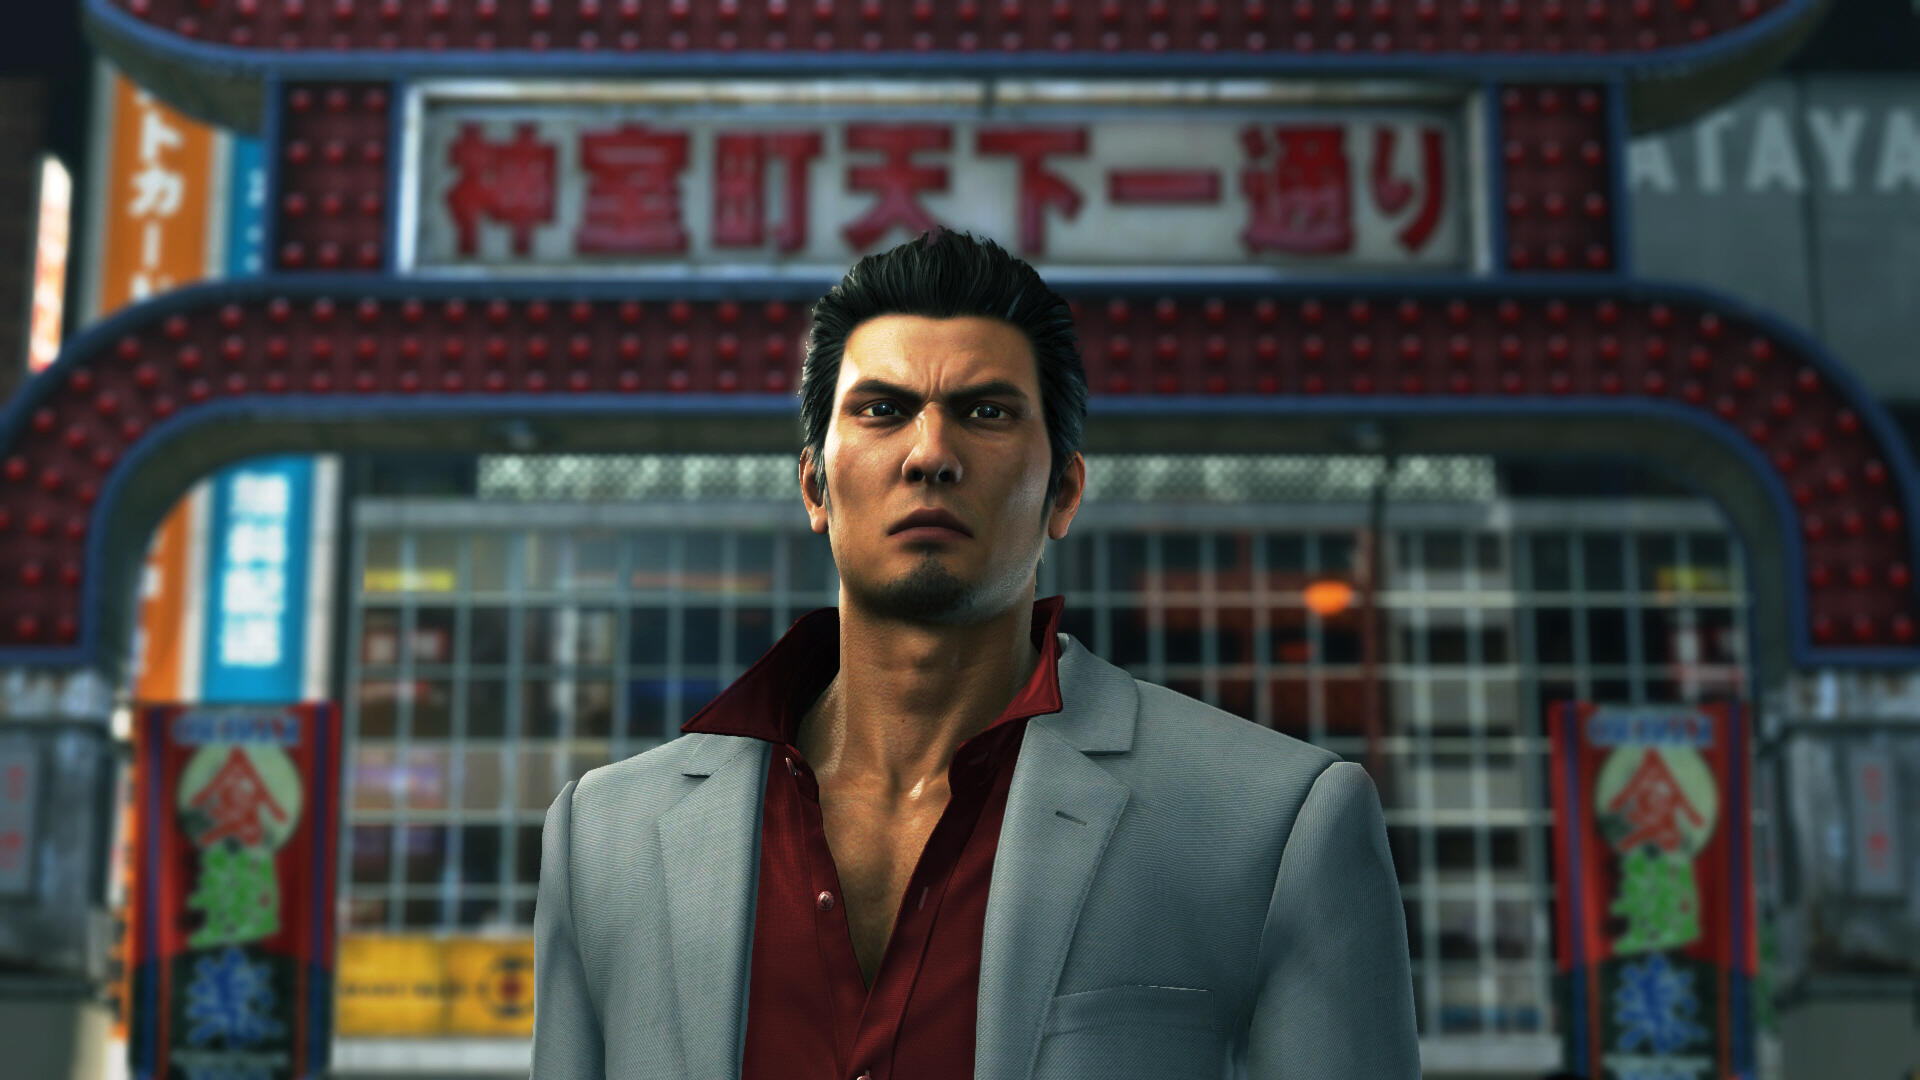 Yakuza 6: The Song of Life Will Release on March 20, 2018 in the West